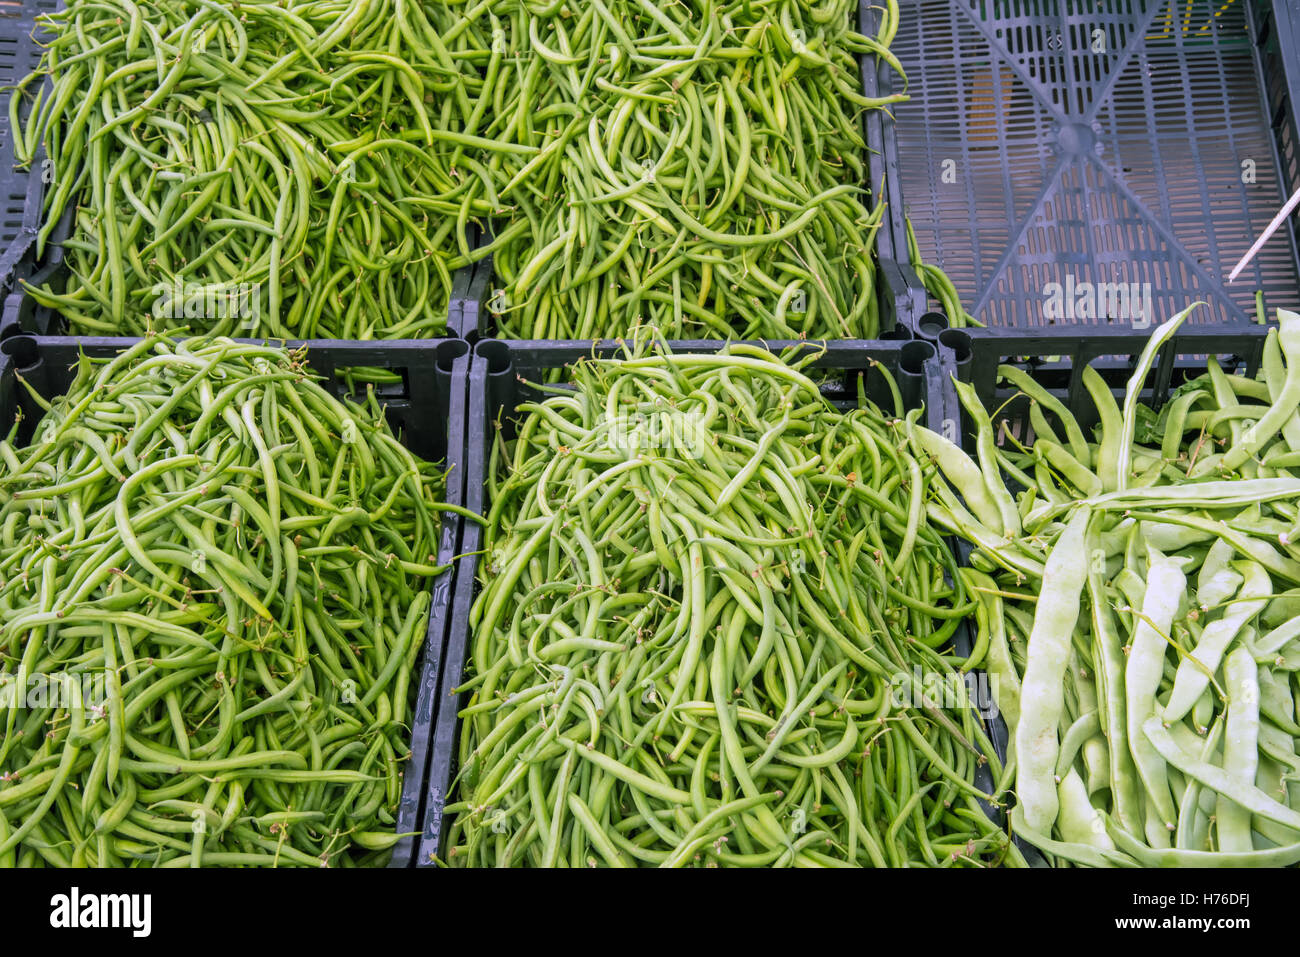 Fresh green peas for sale at a market - Stock Image